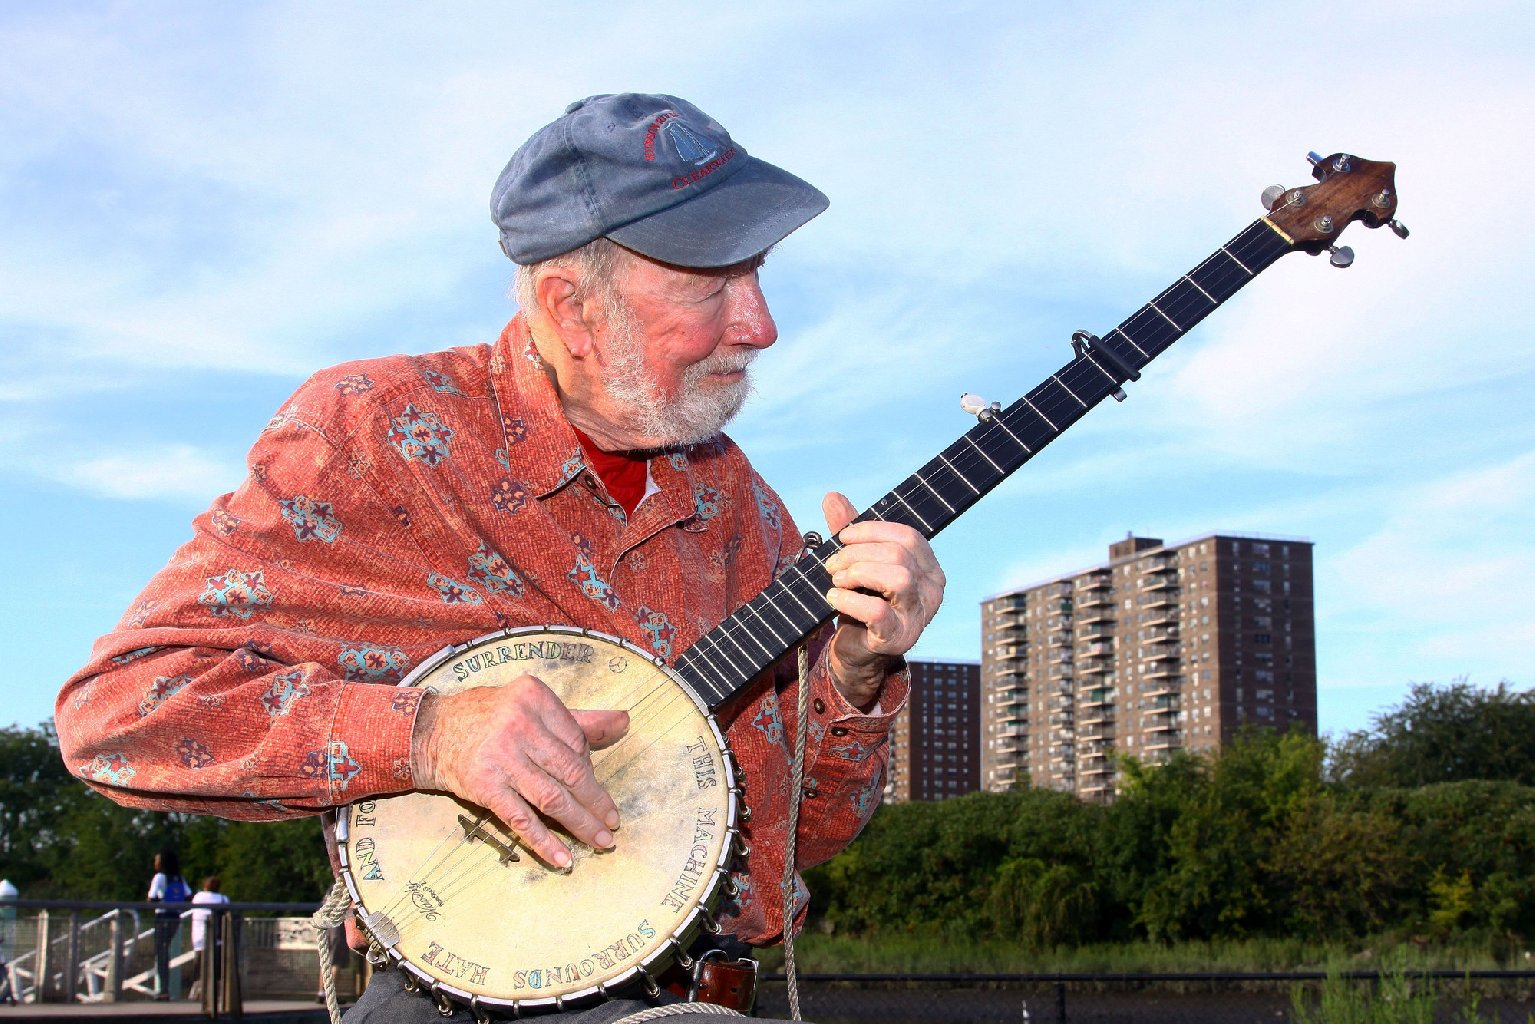 Pete Seeger performed in 2009 at the Dorothy and Lillian Gish Prize. (Astrid Stawiarz/Getty Images)